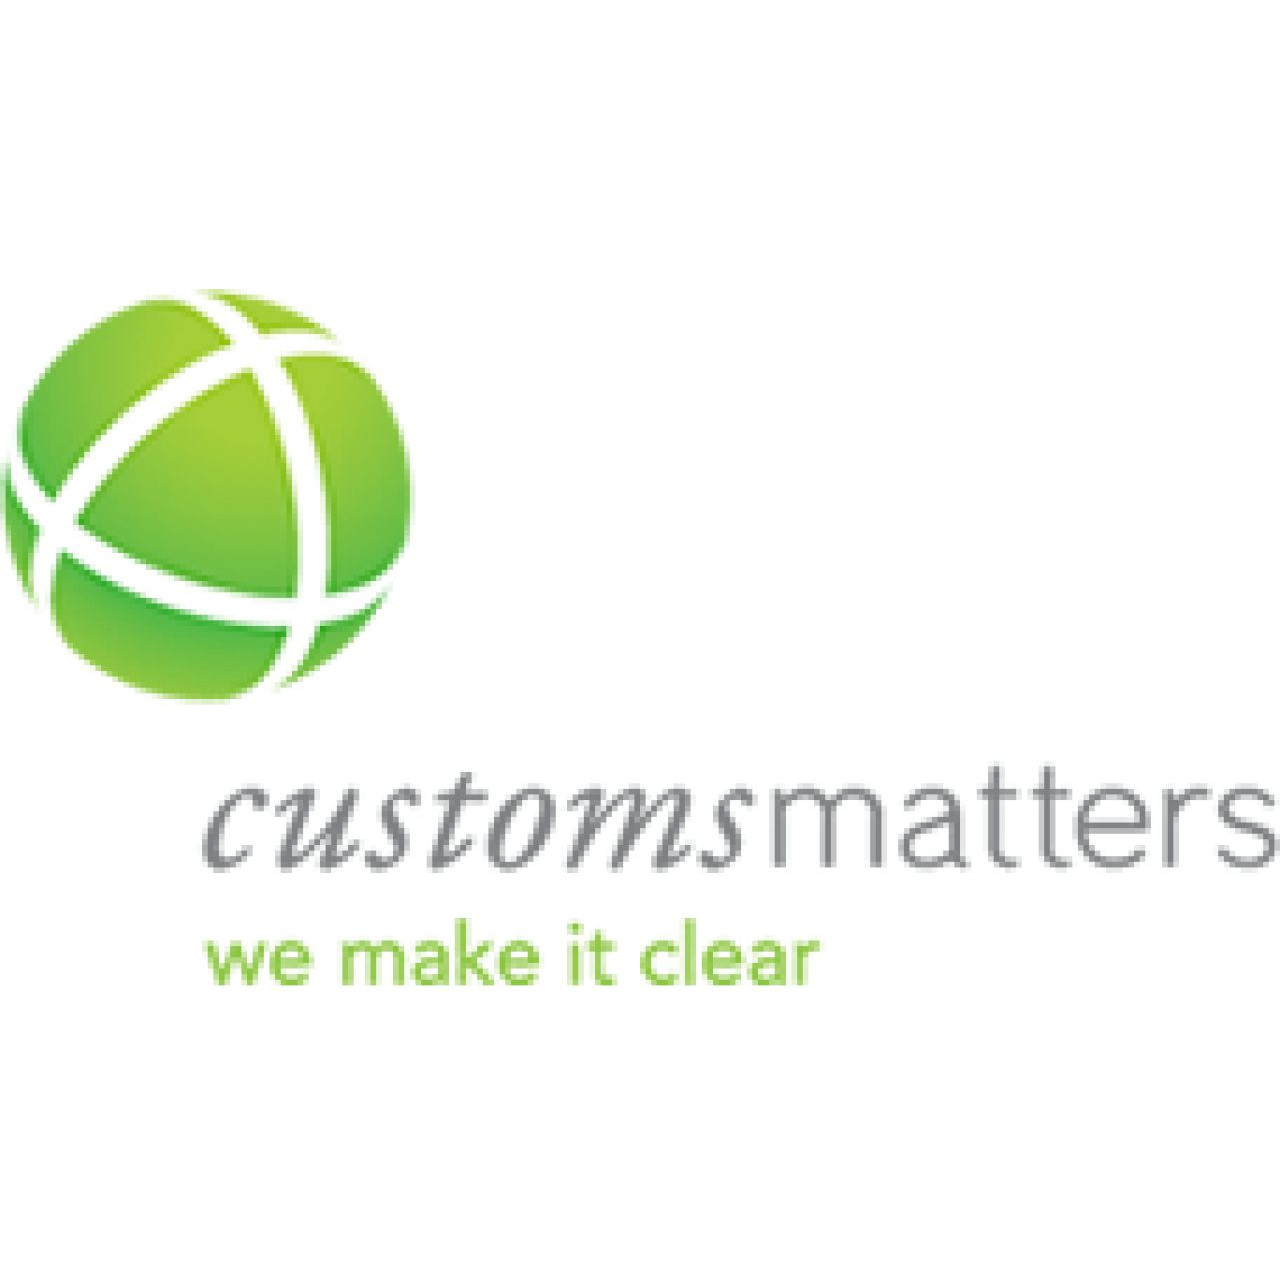 Customs Matters